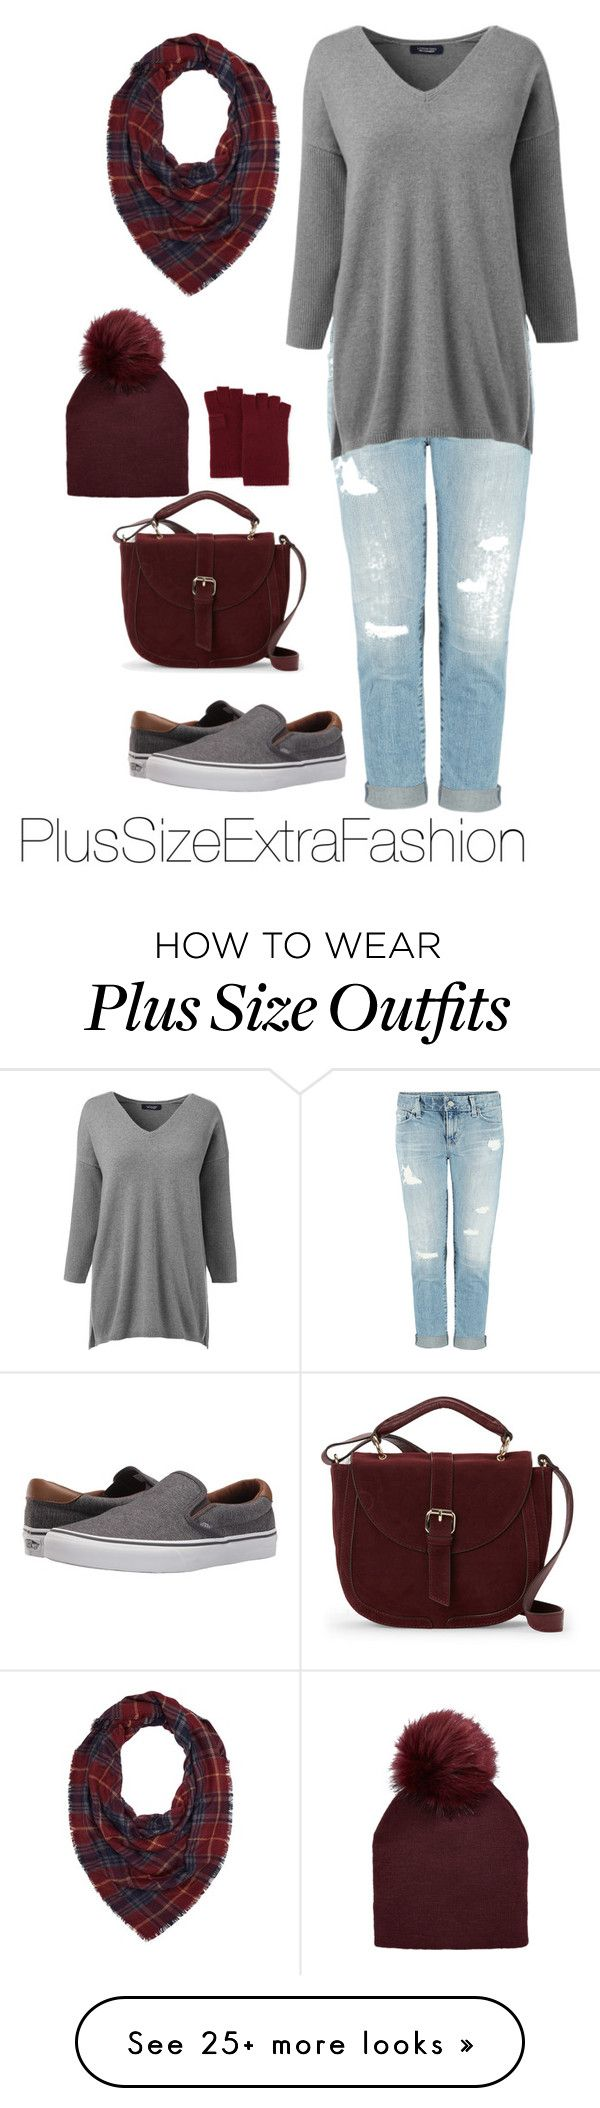 """""""Gray and Burgundy Plus Size Fall Outfit"""" by plussizeextrafashion on Polyvore featuring Dex, Lands' End, IMoshion, Vans, Charlotte Russe, Neiman Marcus, Fall, autumn, burgundy and plussize"""